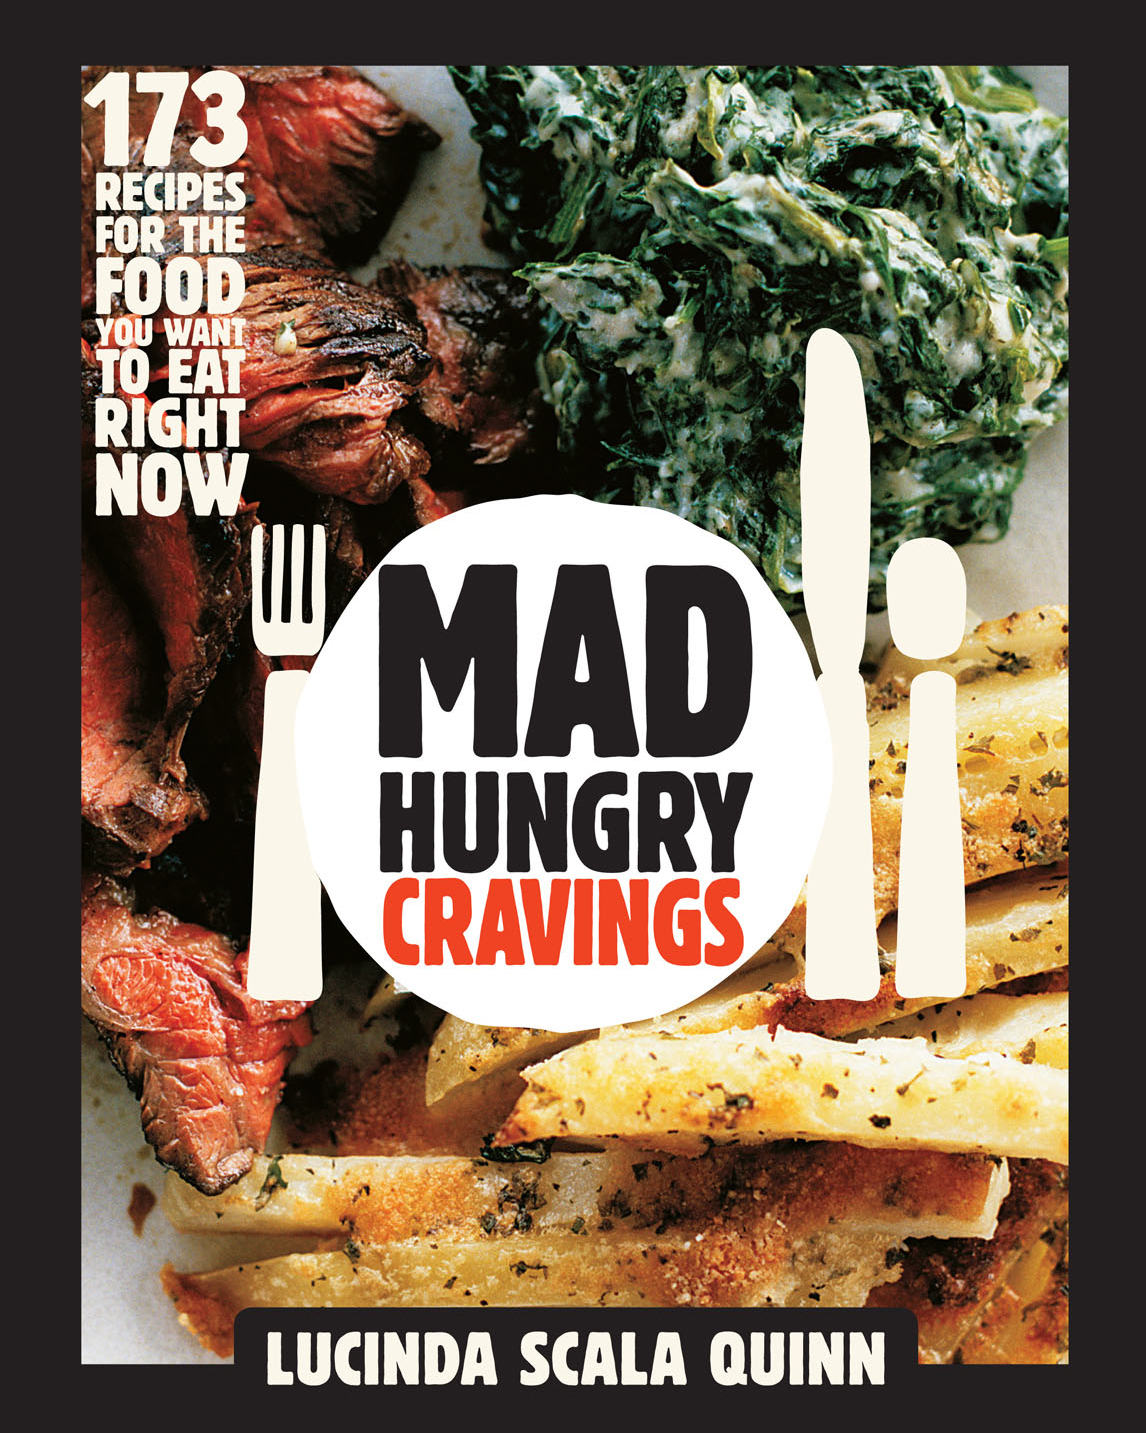 Sneak Peek at  Mad Hungry Cravings,  Lucinda Scala Quinn's Newest Cookbook